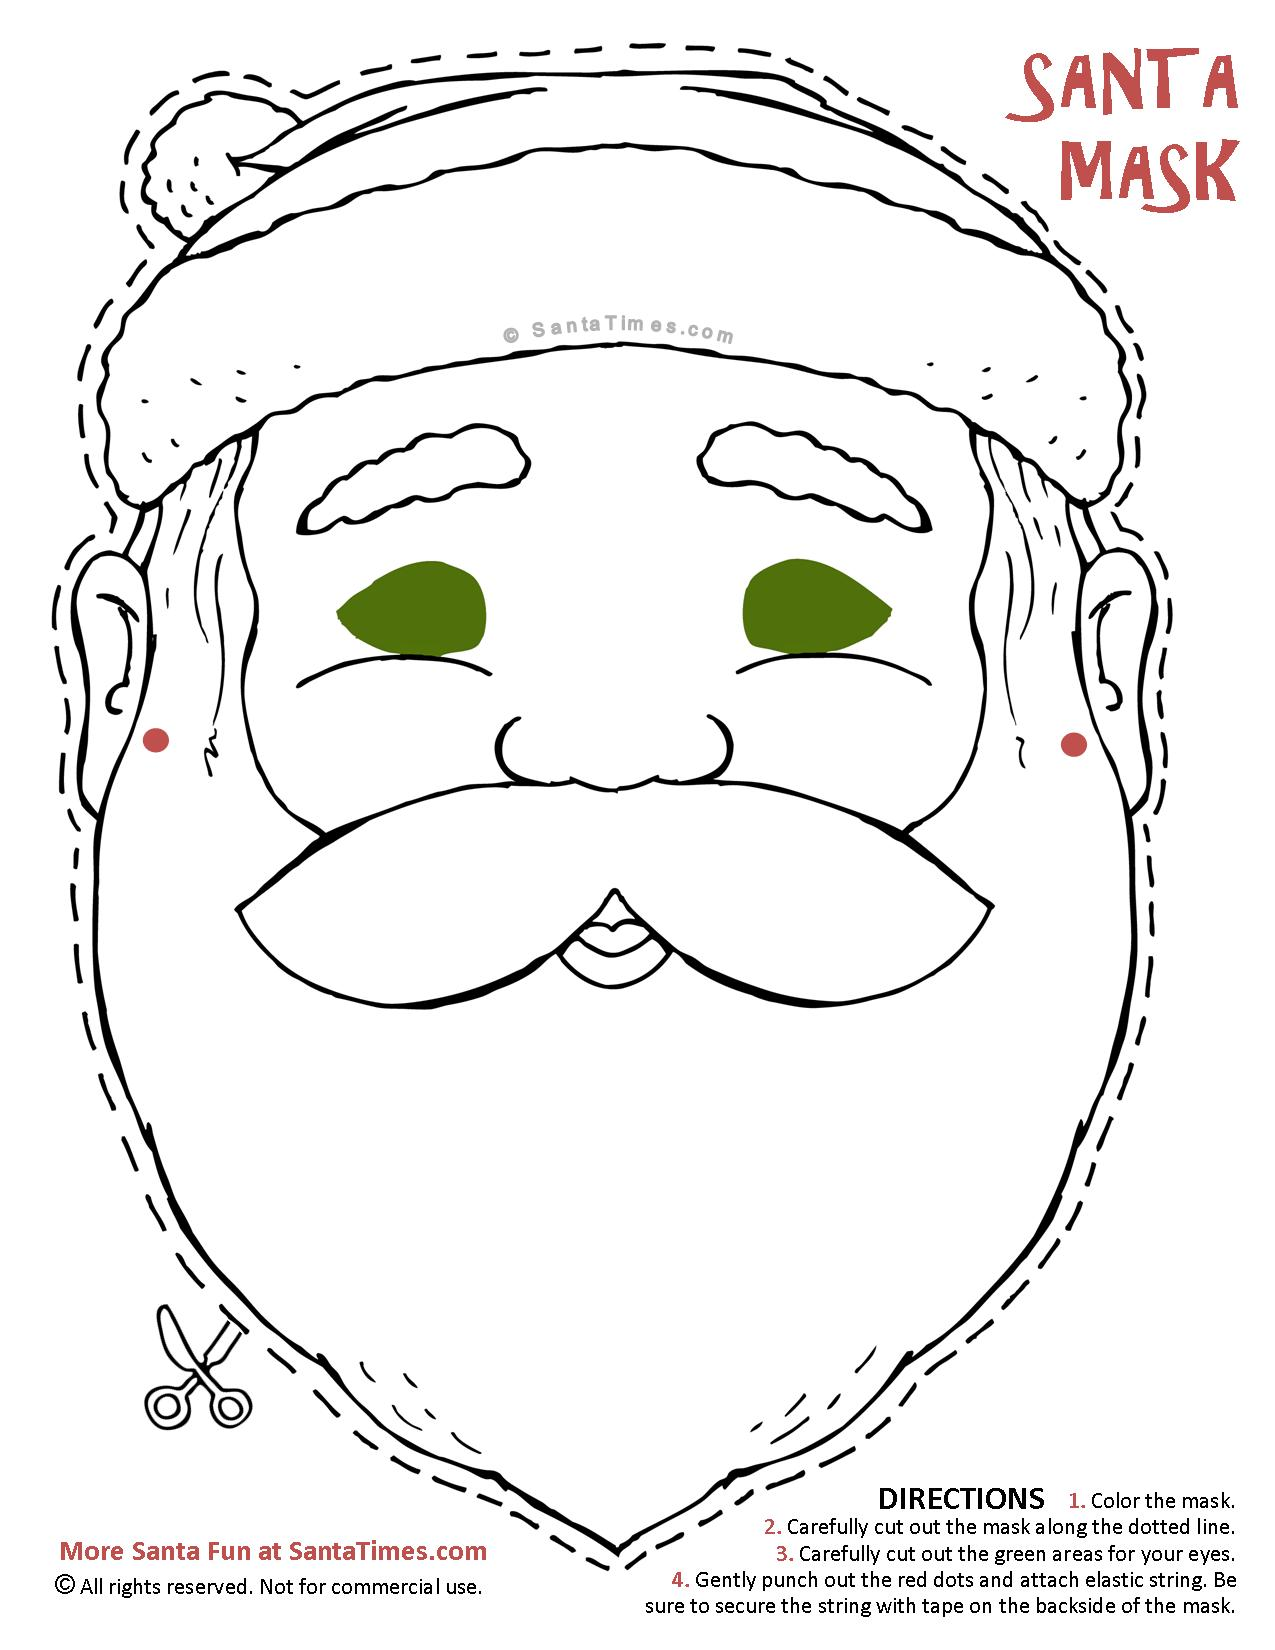 Santa Mask to cut out and color